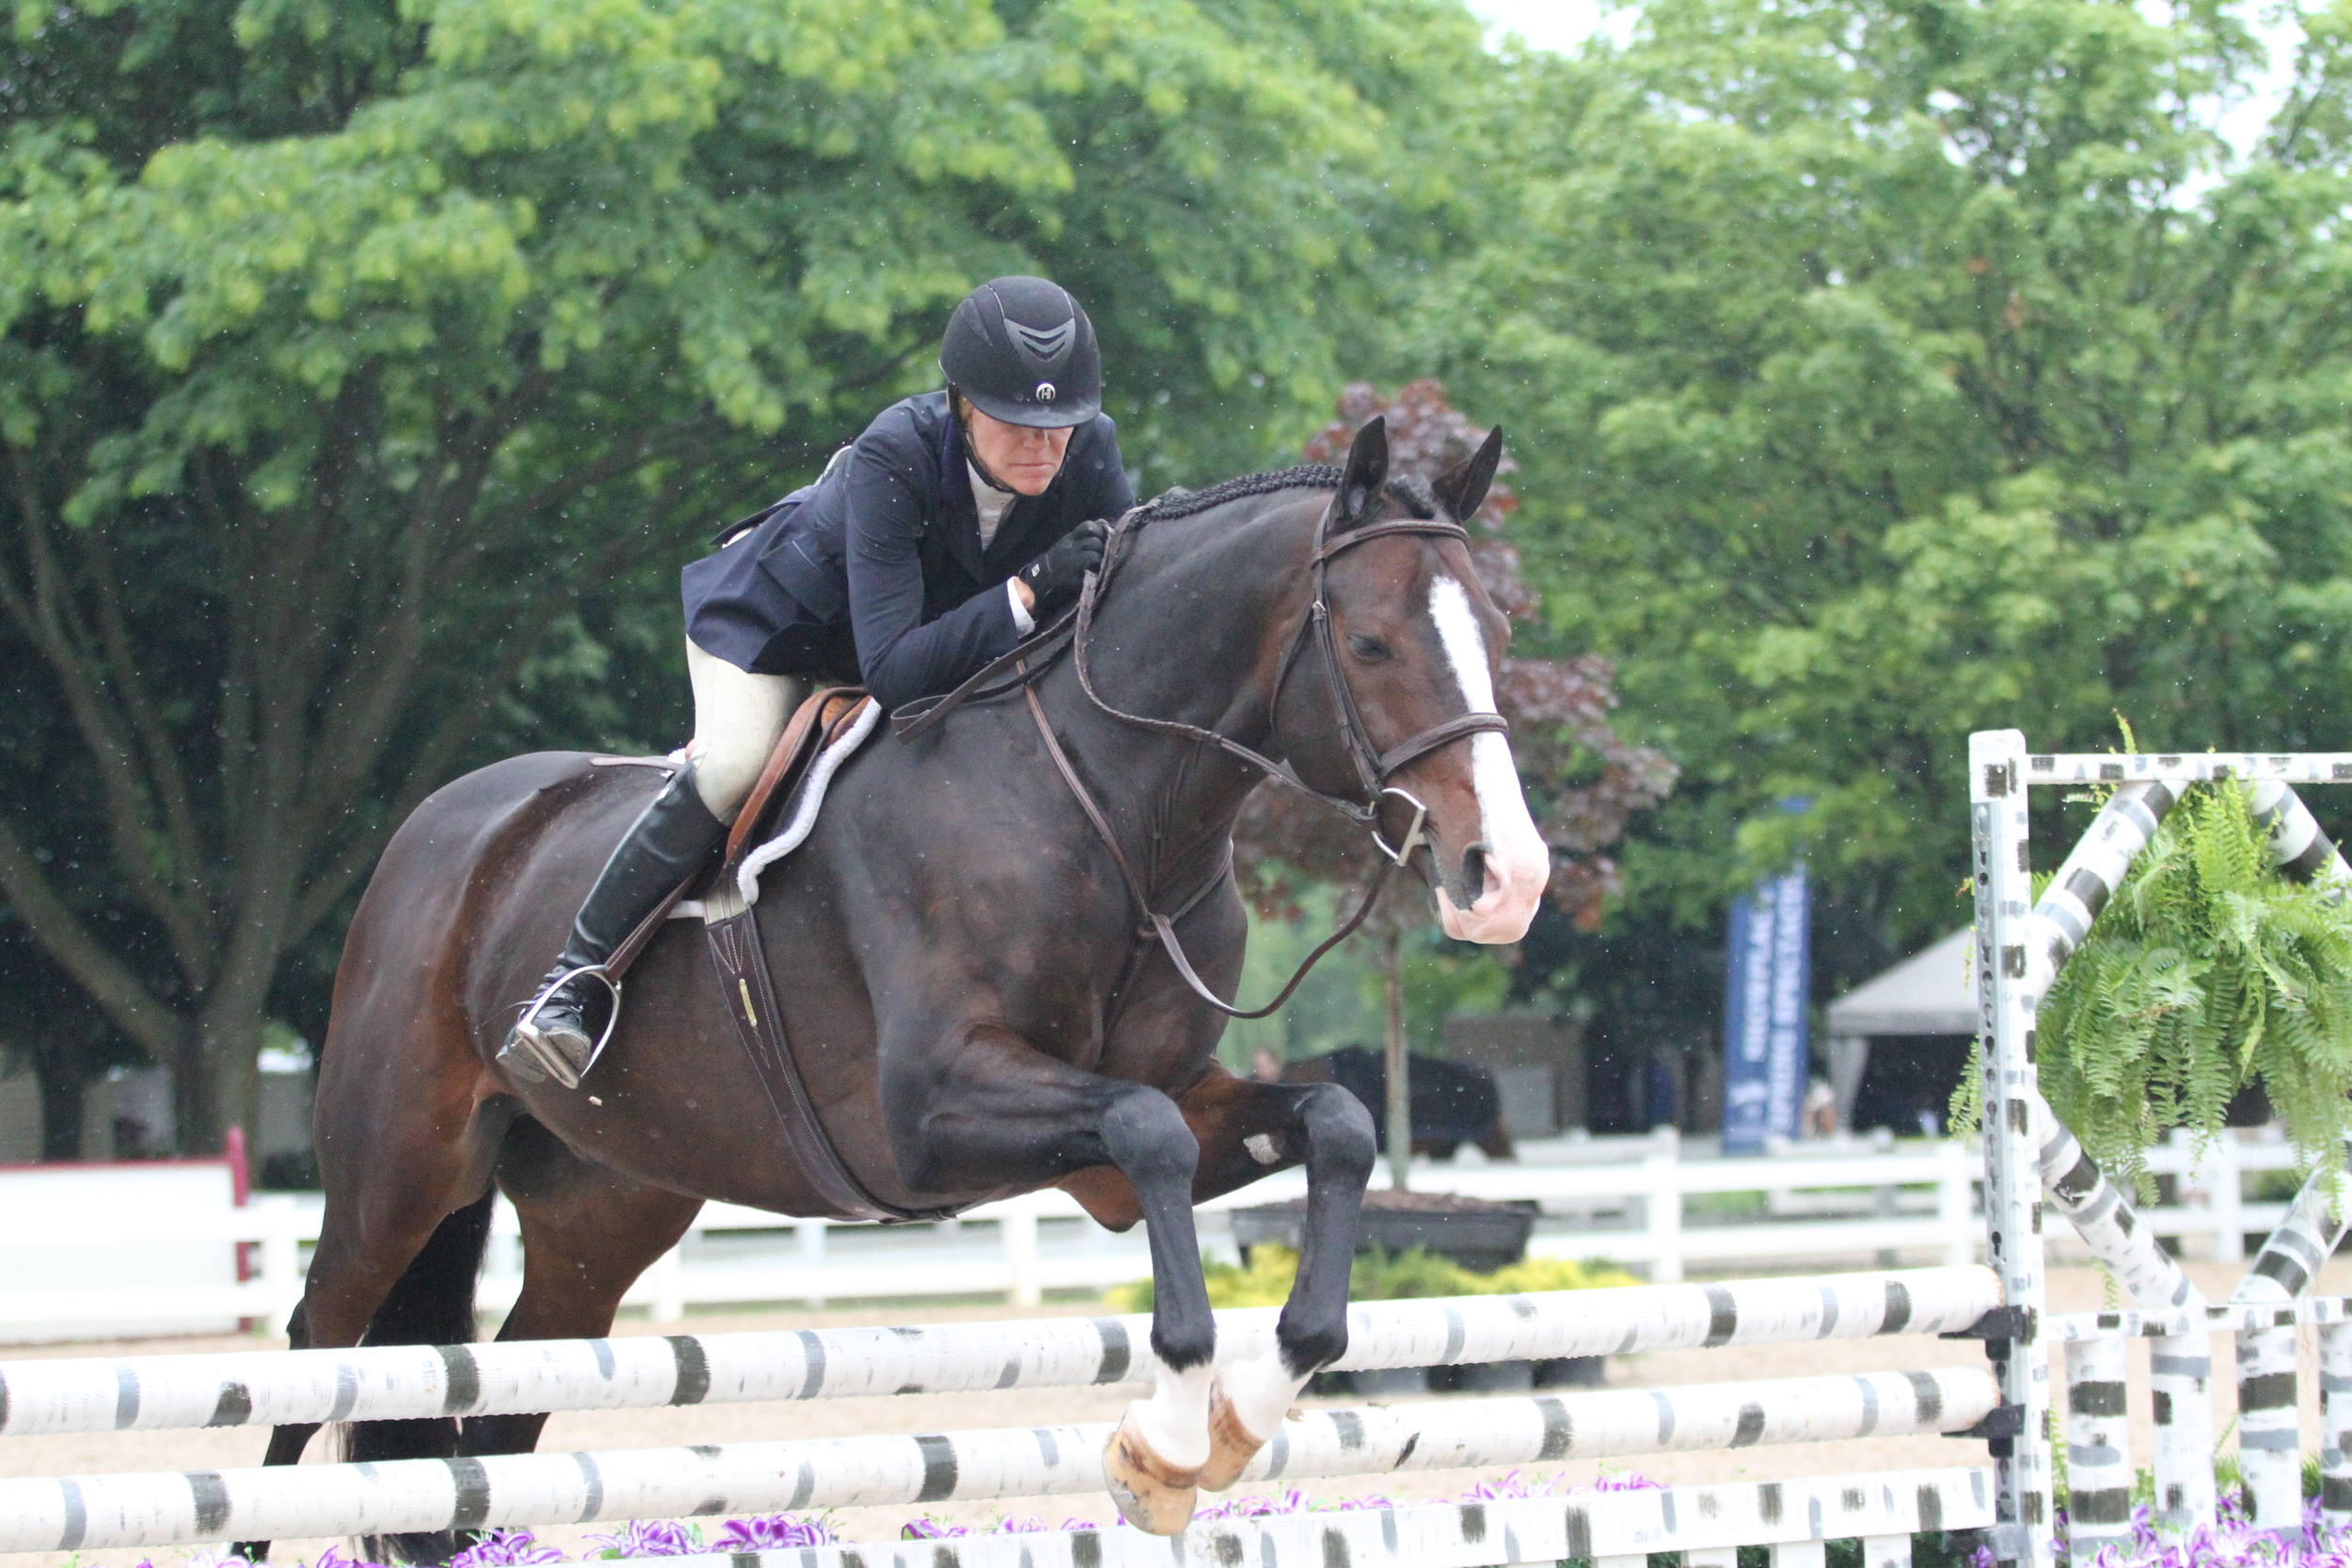 Playbook, owned by Beth Bailey and ridden by Kara Raposa earned the tricolors of the $2,500 Performance Working Hunter 3'3 division.